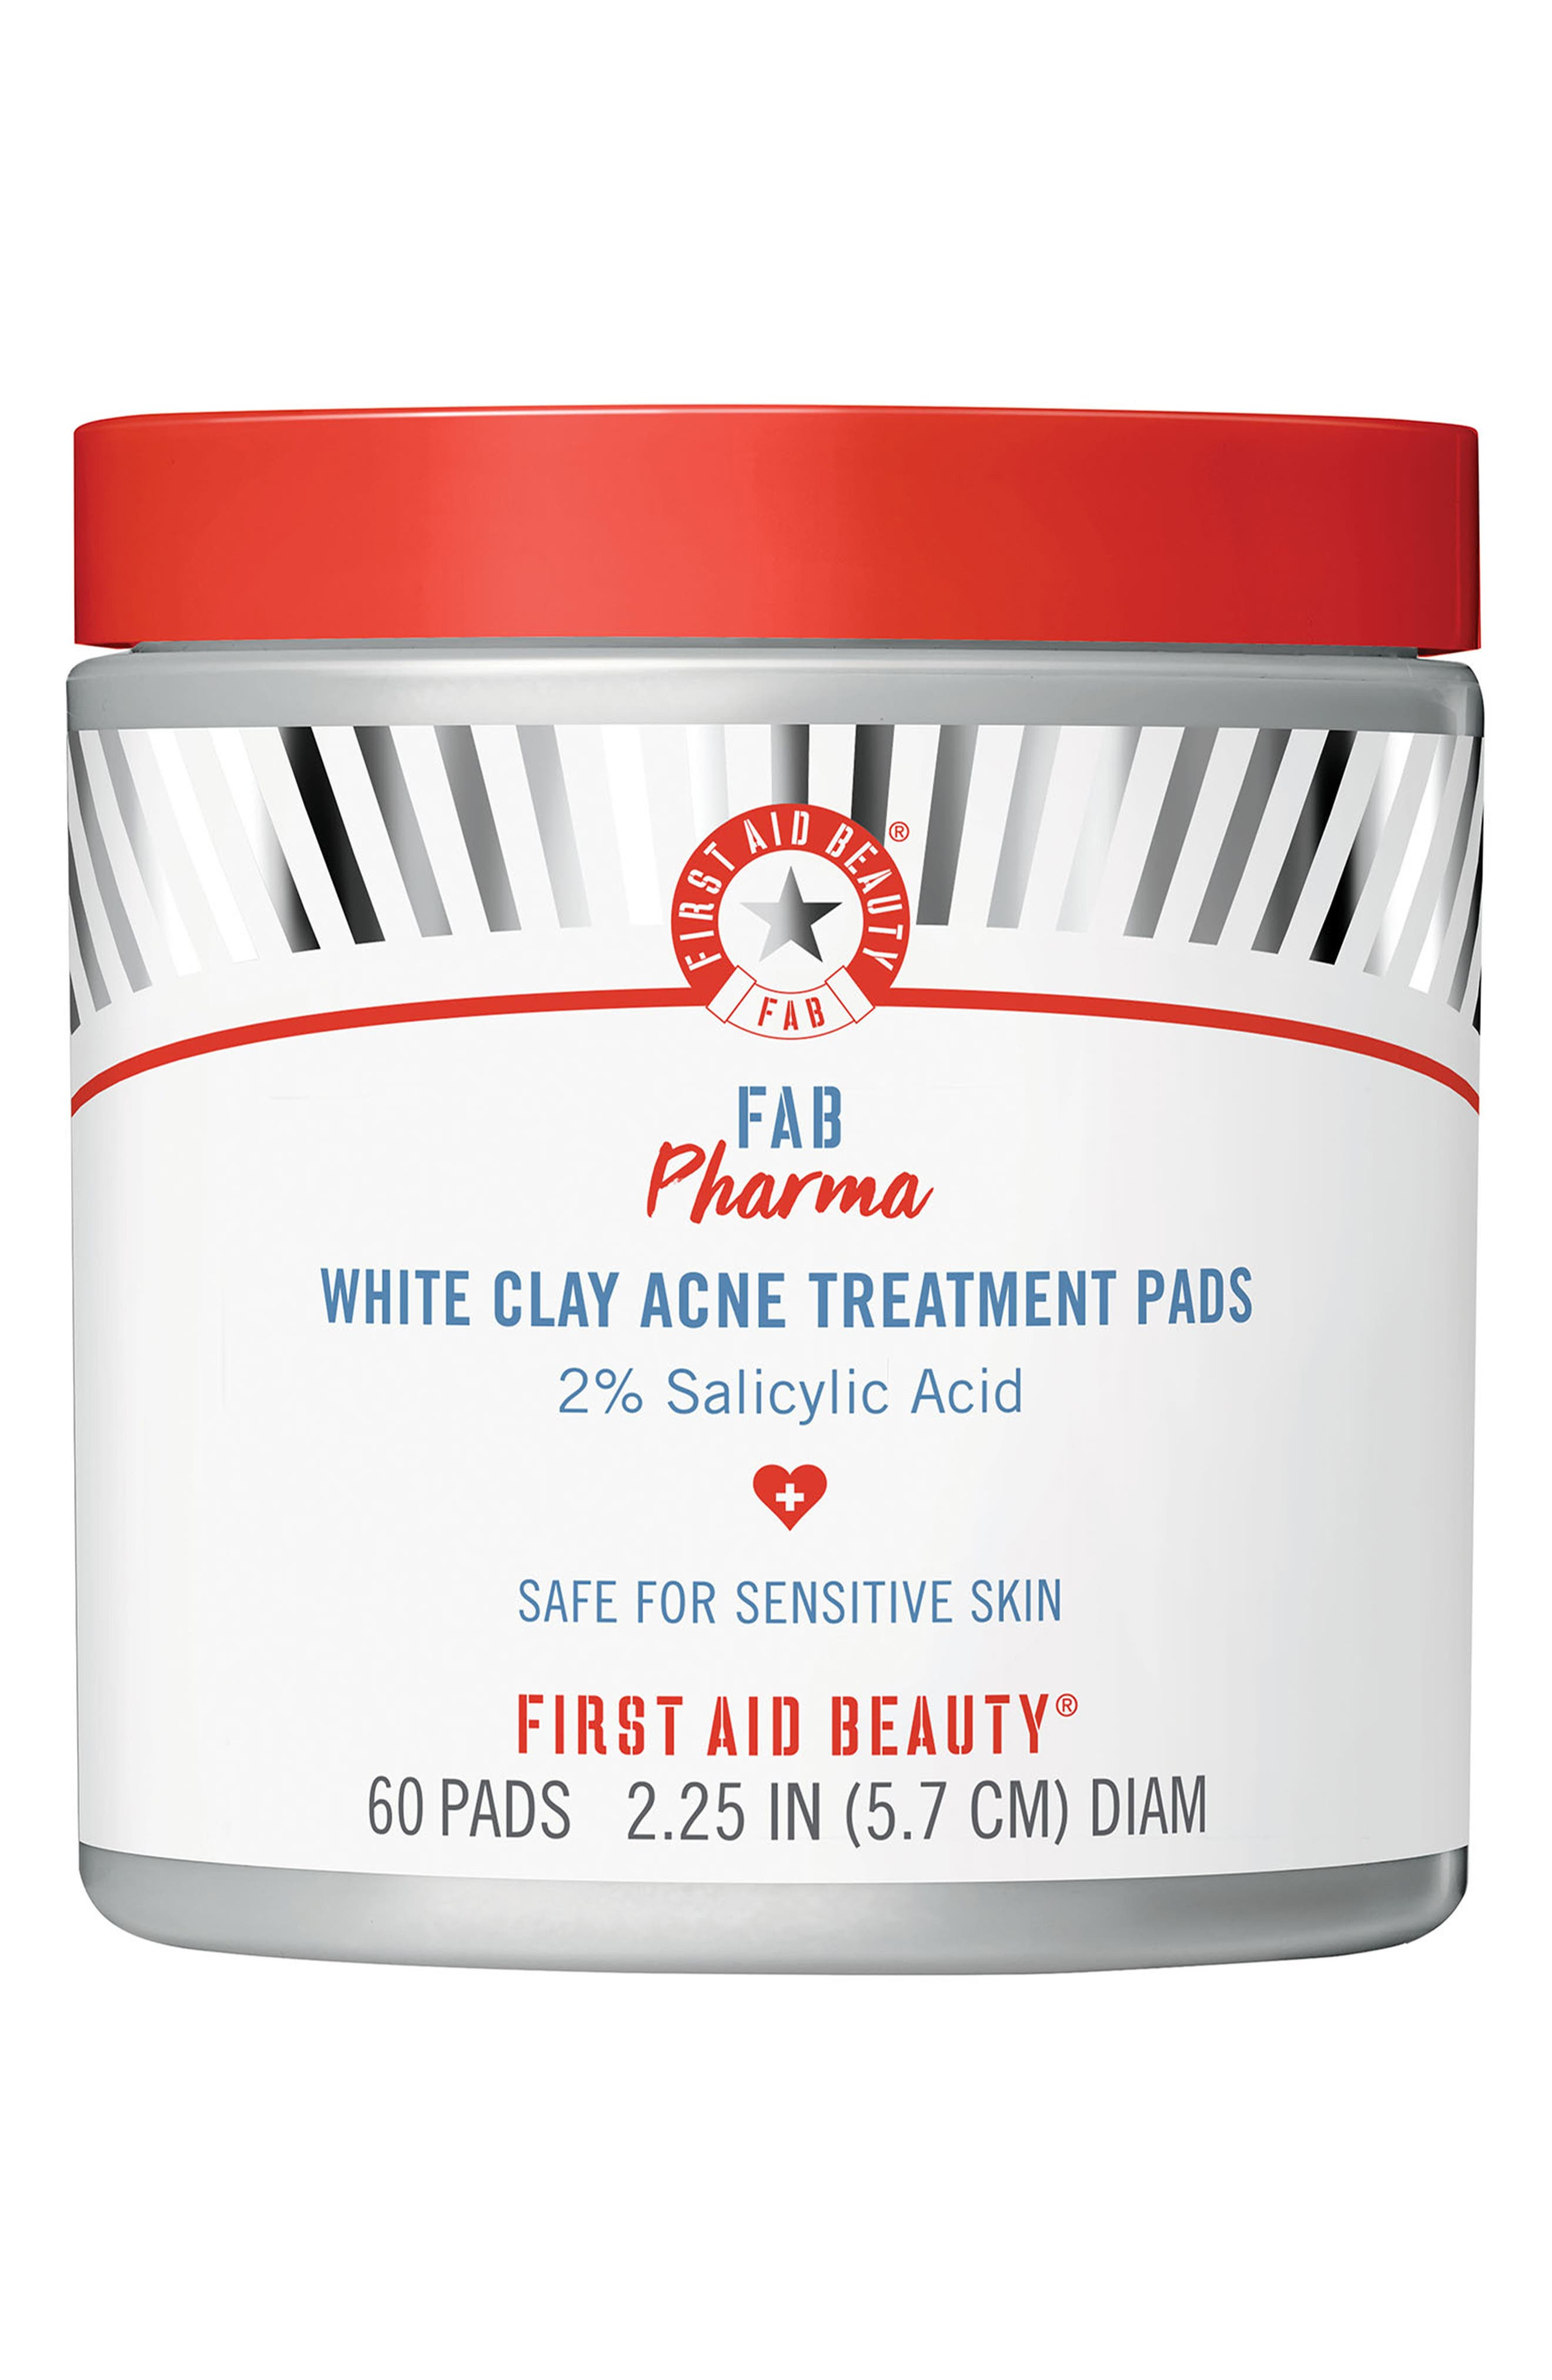 Fab Pharma White Clay Acne Treatment Pads with 2% Salicylic Acid   Nordstrom